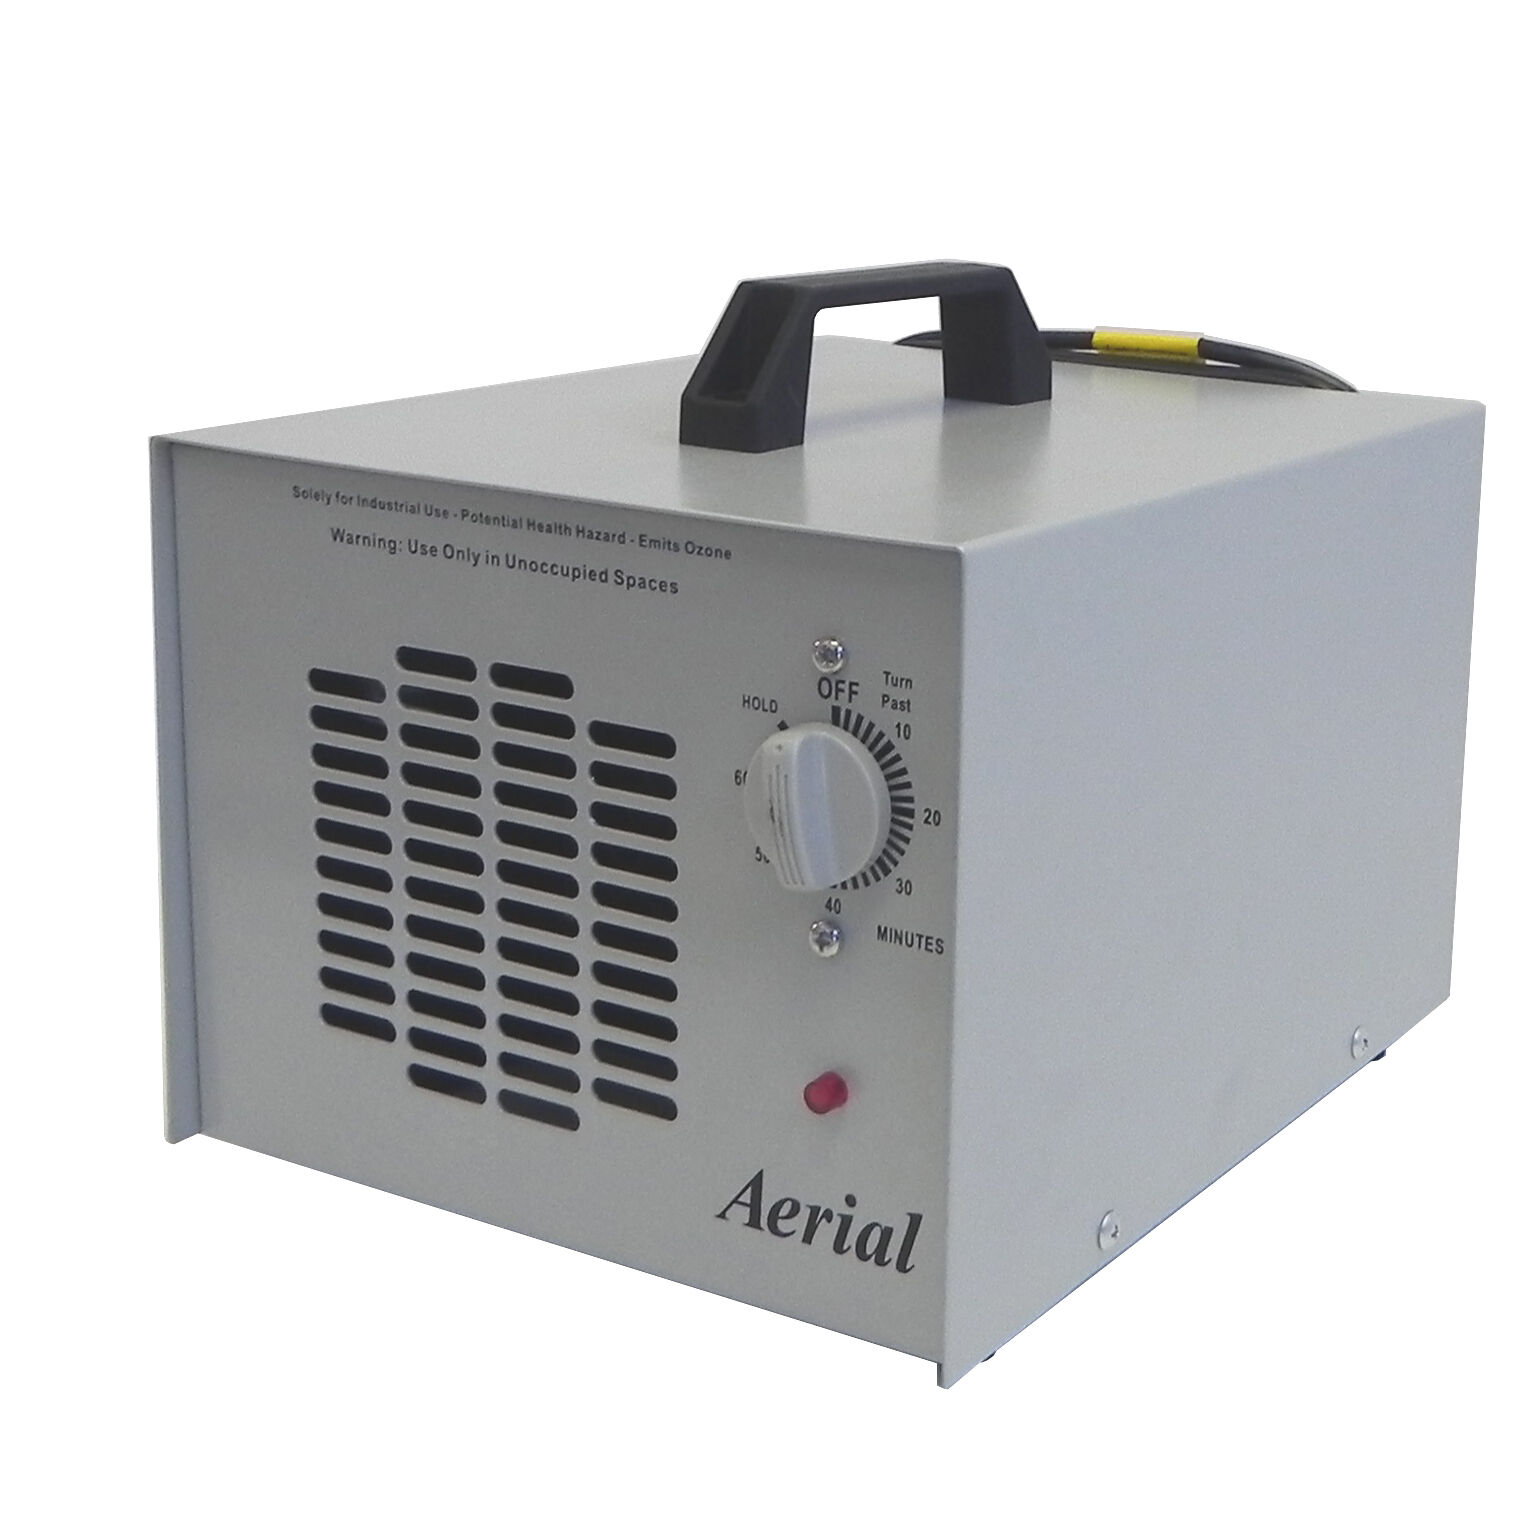 Aerial Commercial Industrial Air Purifier Ozone Generator Cleaner Overstocked